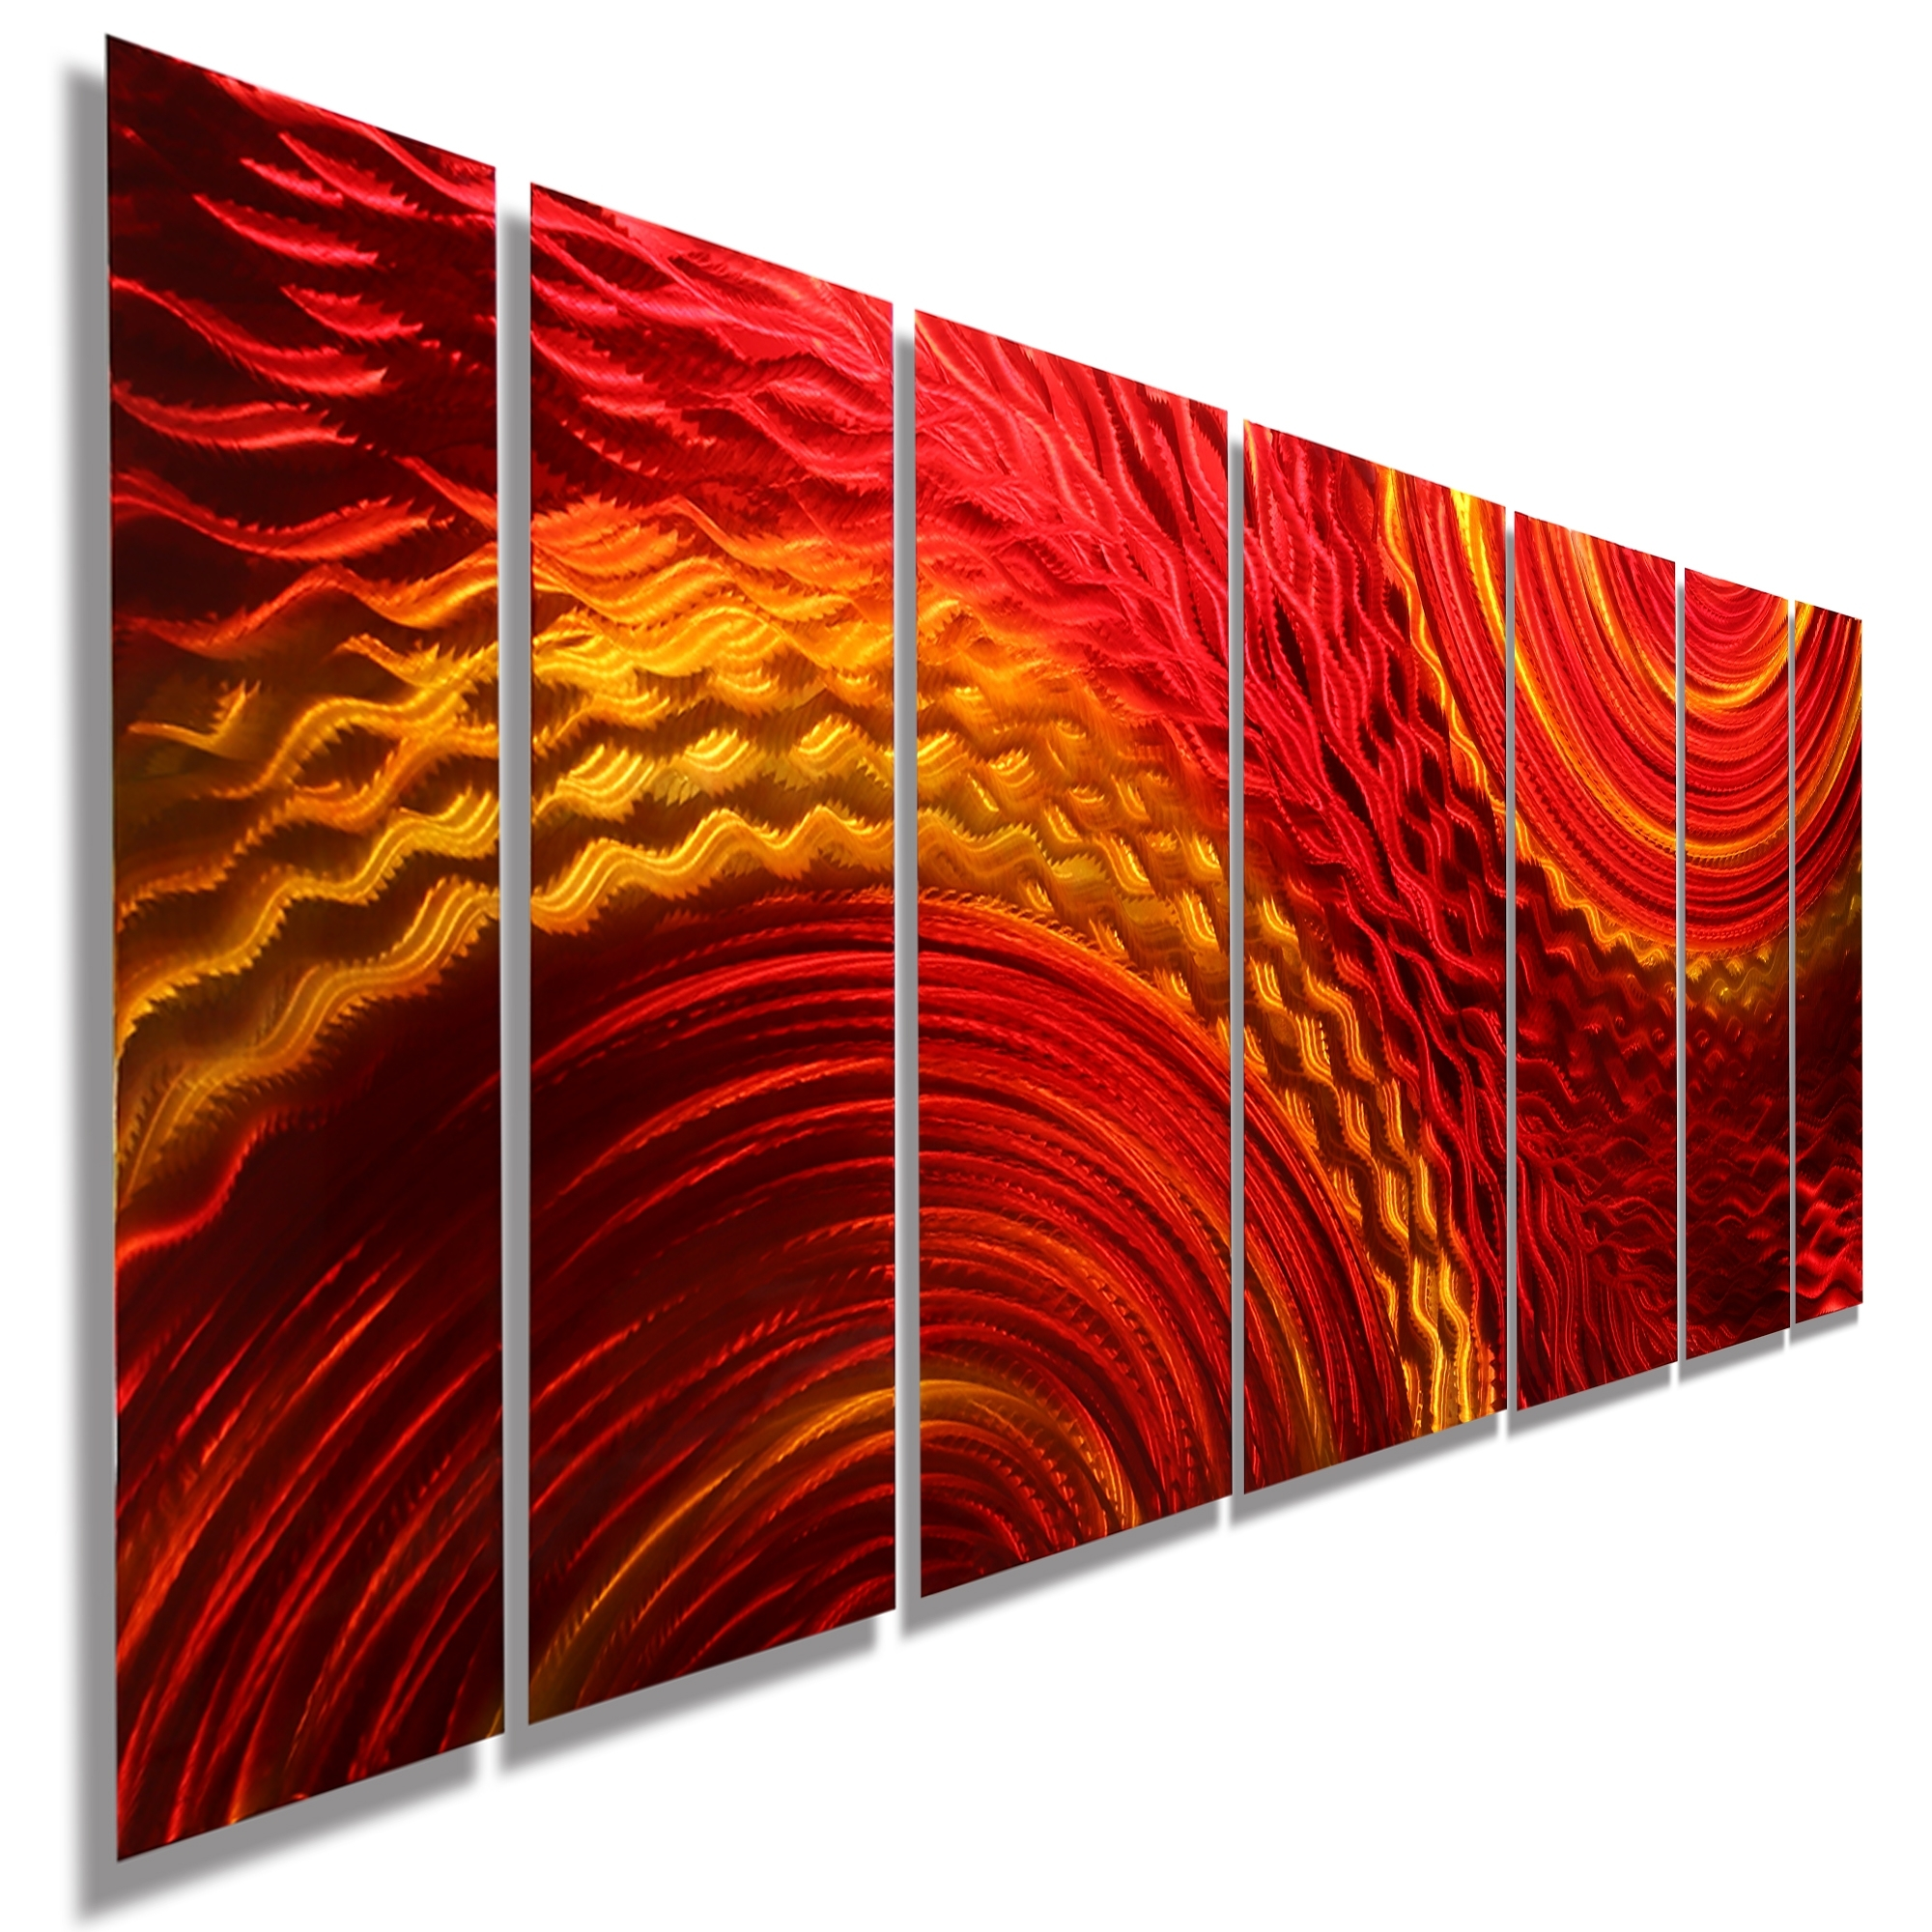 2018 Home Decor: Alluring Abstract Metal Wall Art With Harvest Moods Xl In Australian Abstract Wall Art (Gallery 5 of 15)